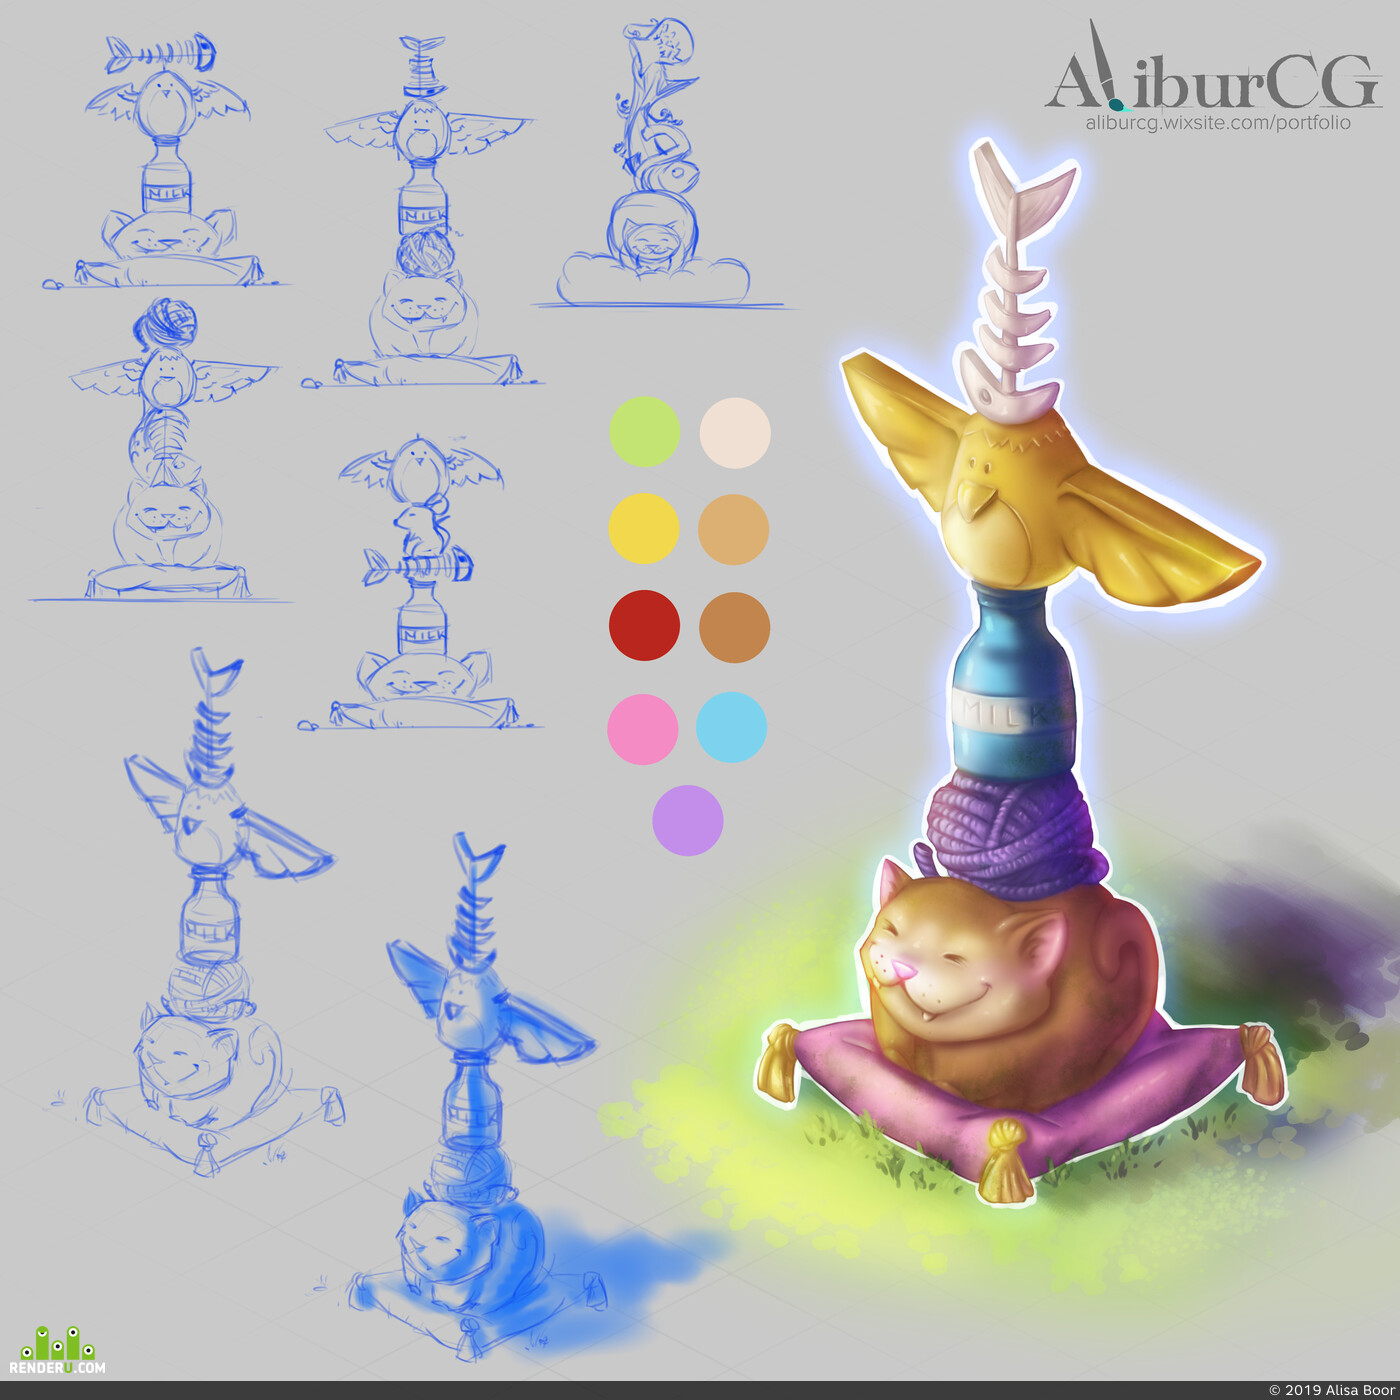 concept-art, concept, game, gameart, gamedesing, Game-Art, casual style, for casual play, casual art, casualstyle